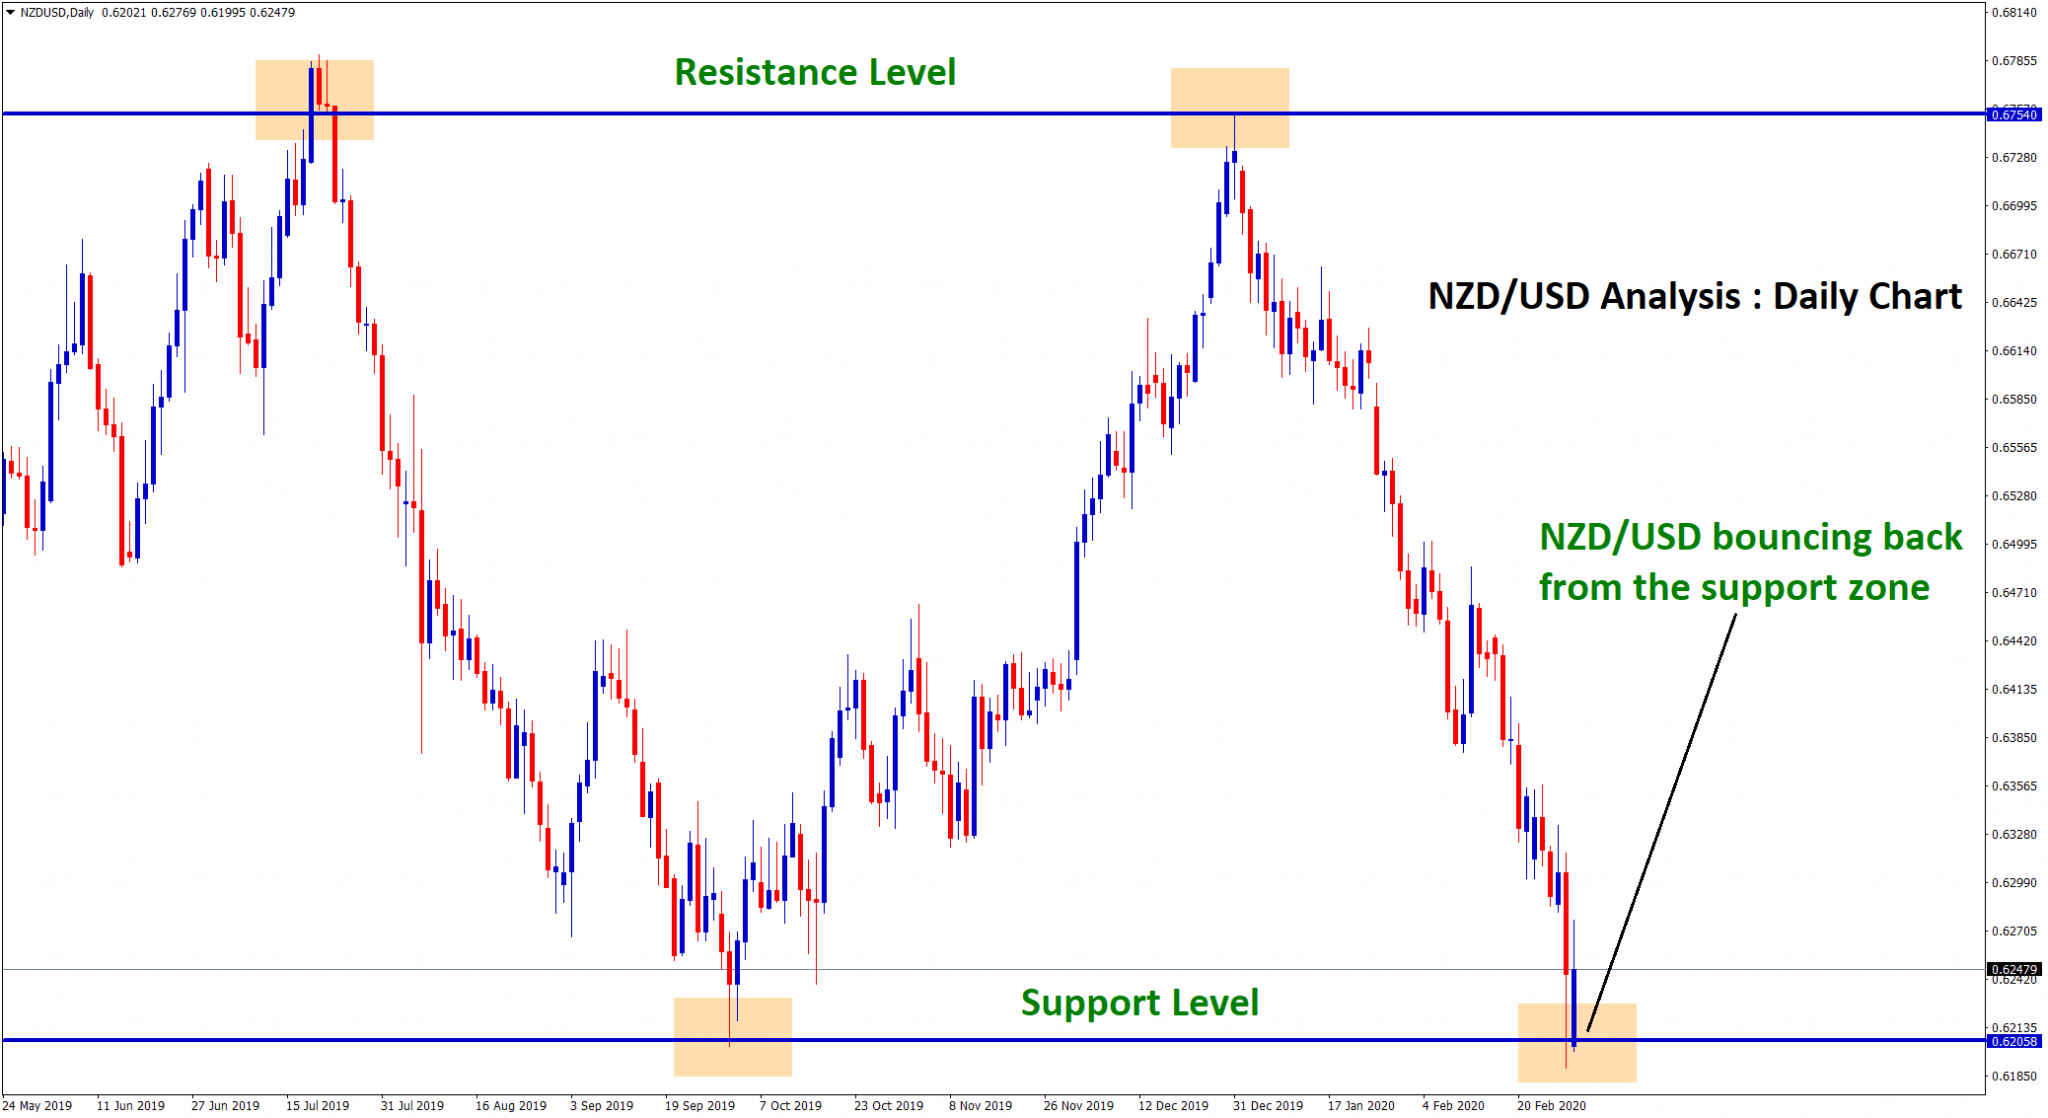 nzd usd reversal happened from support level